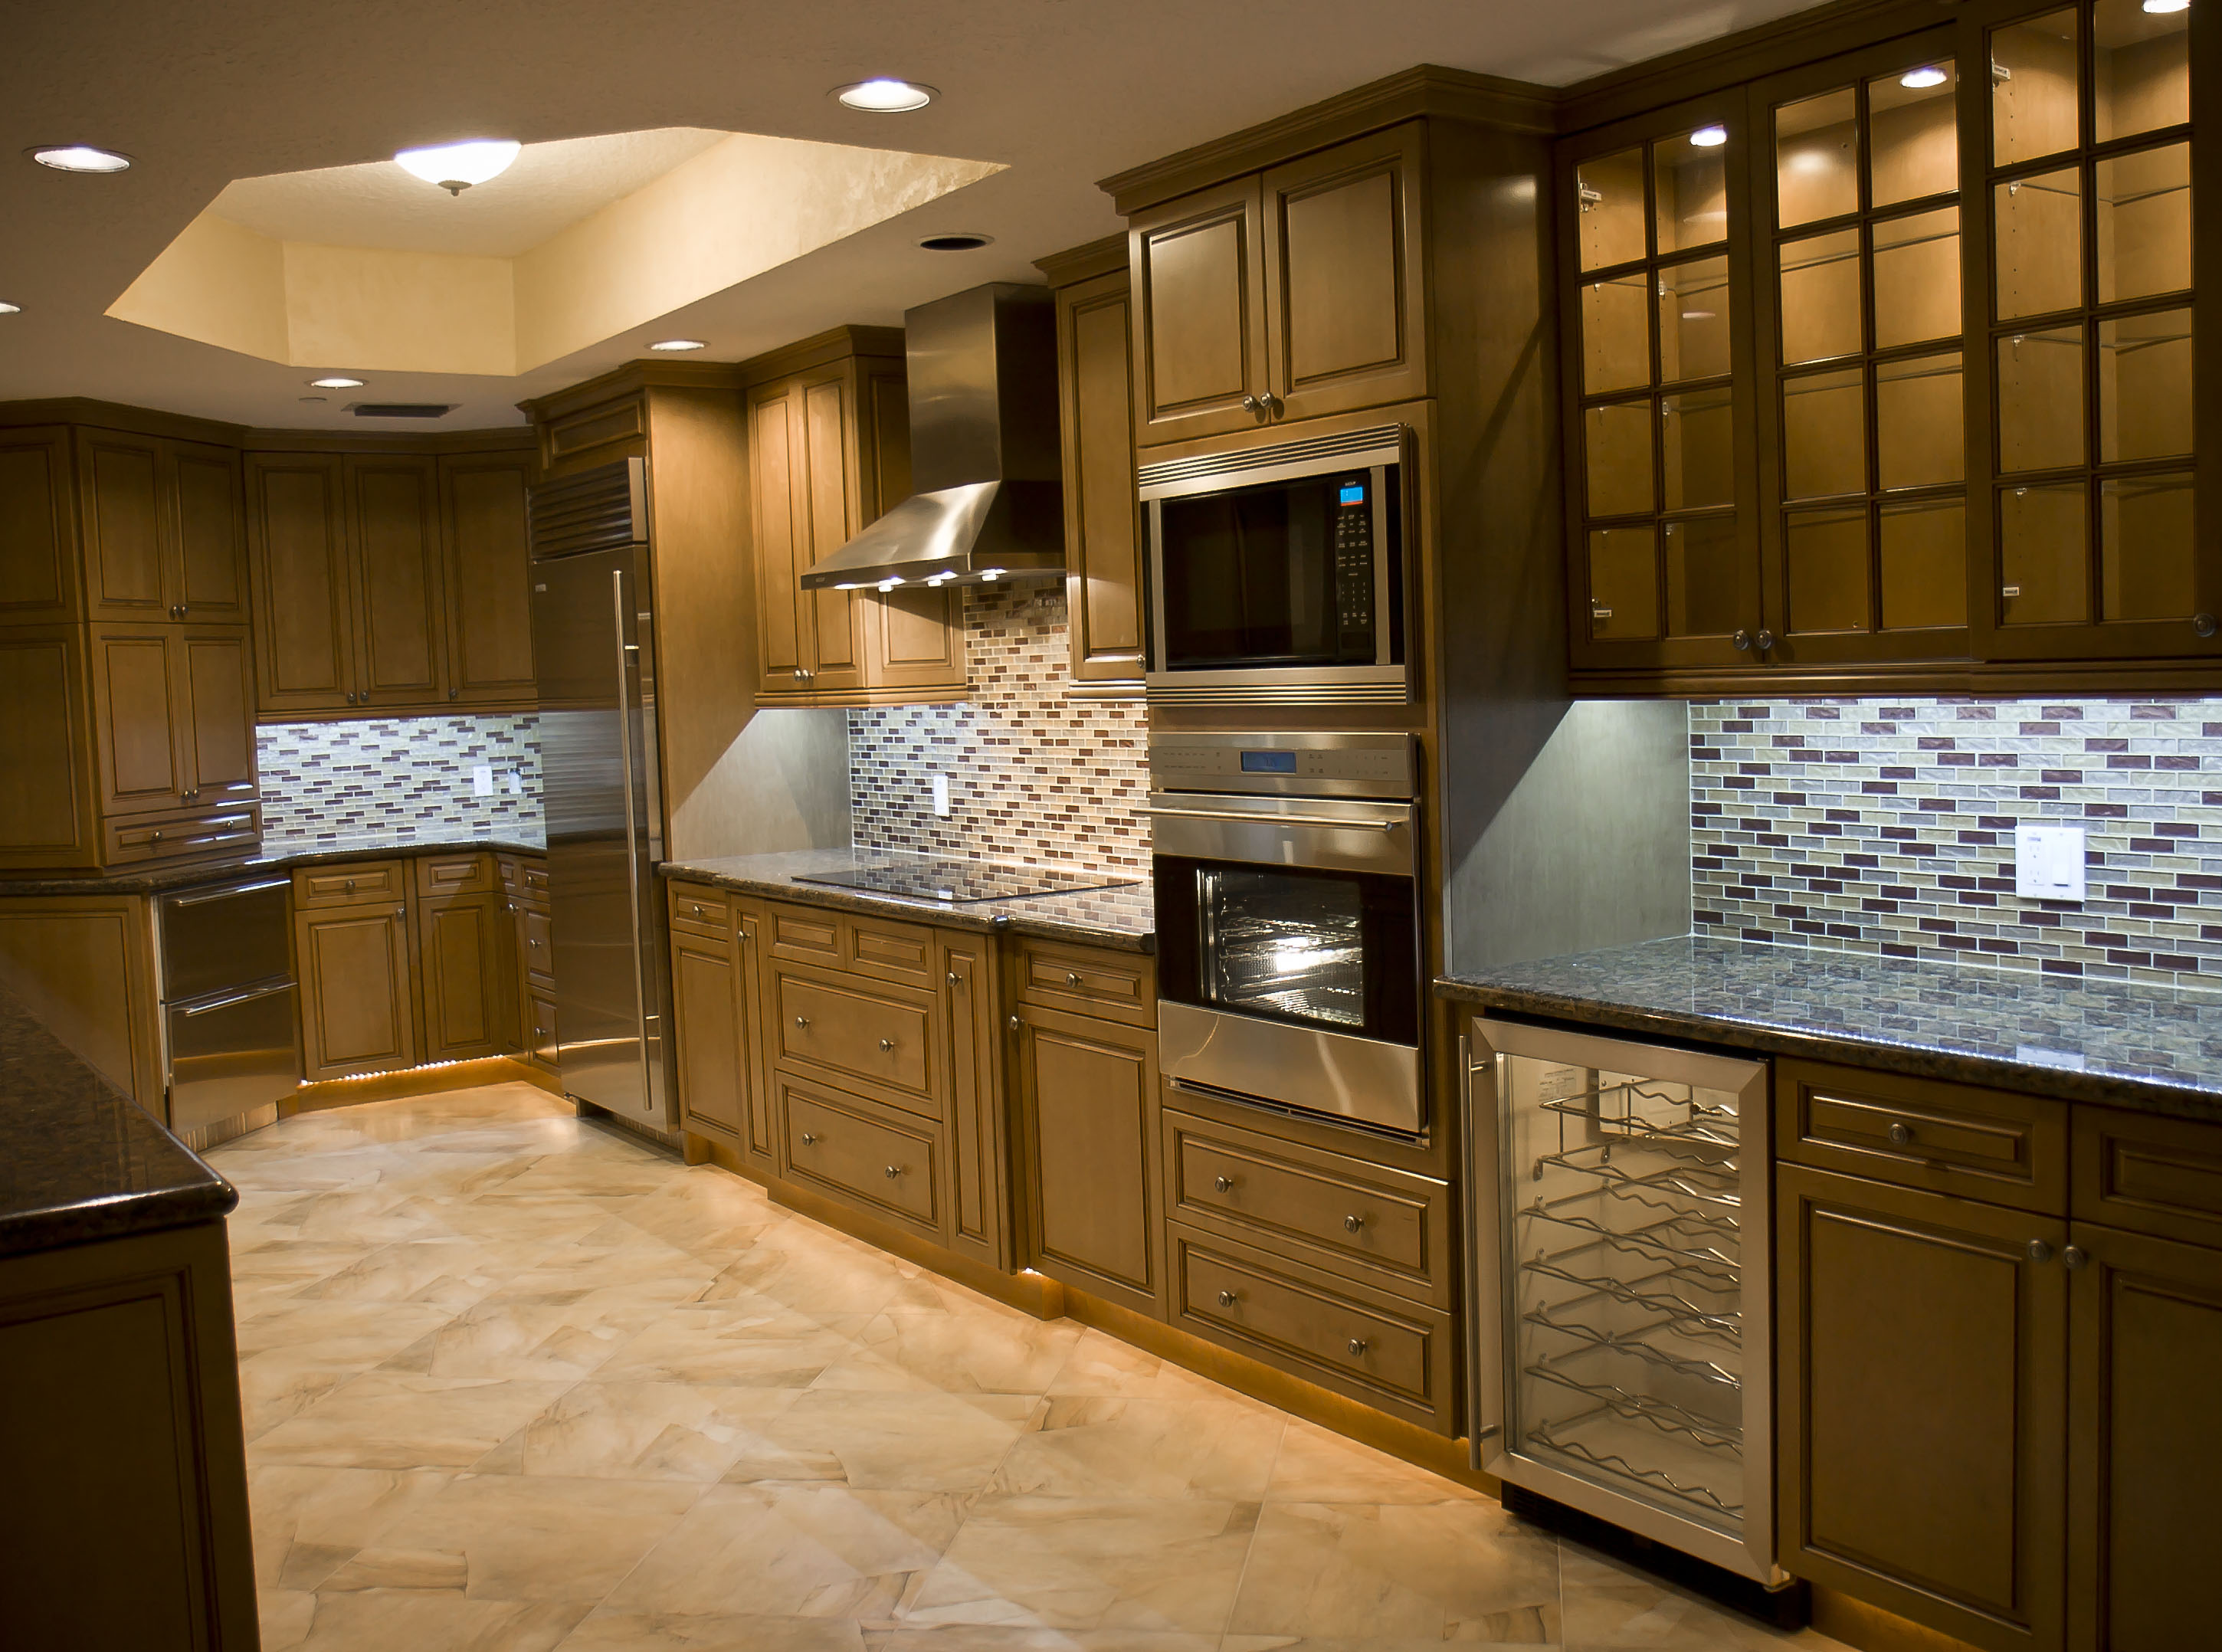 tampa bay high-end kitchen remodel photos | custom home building